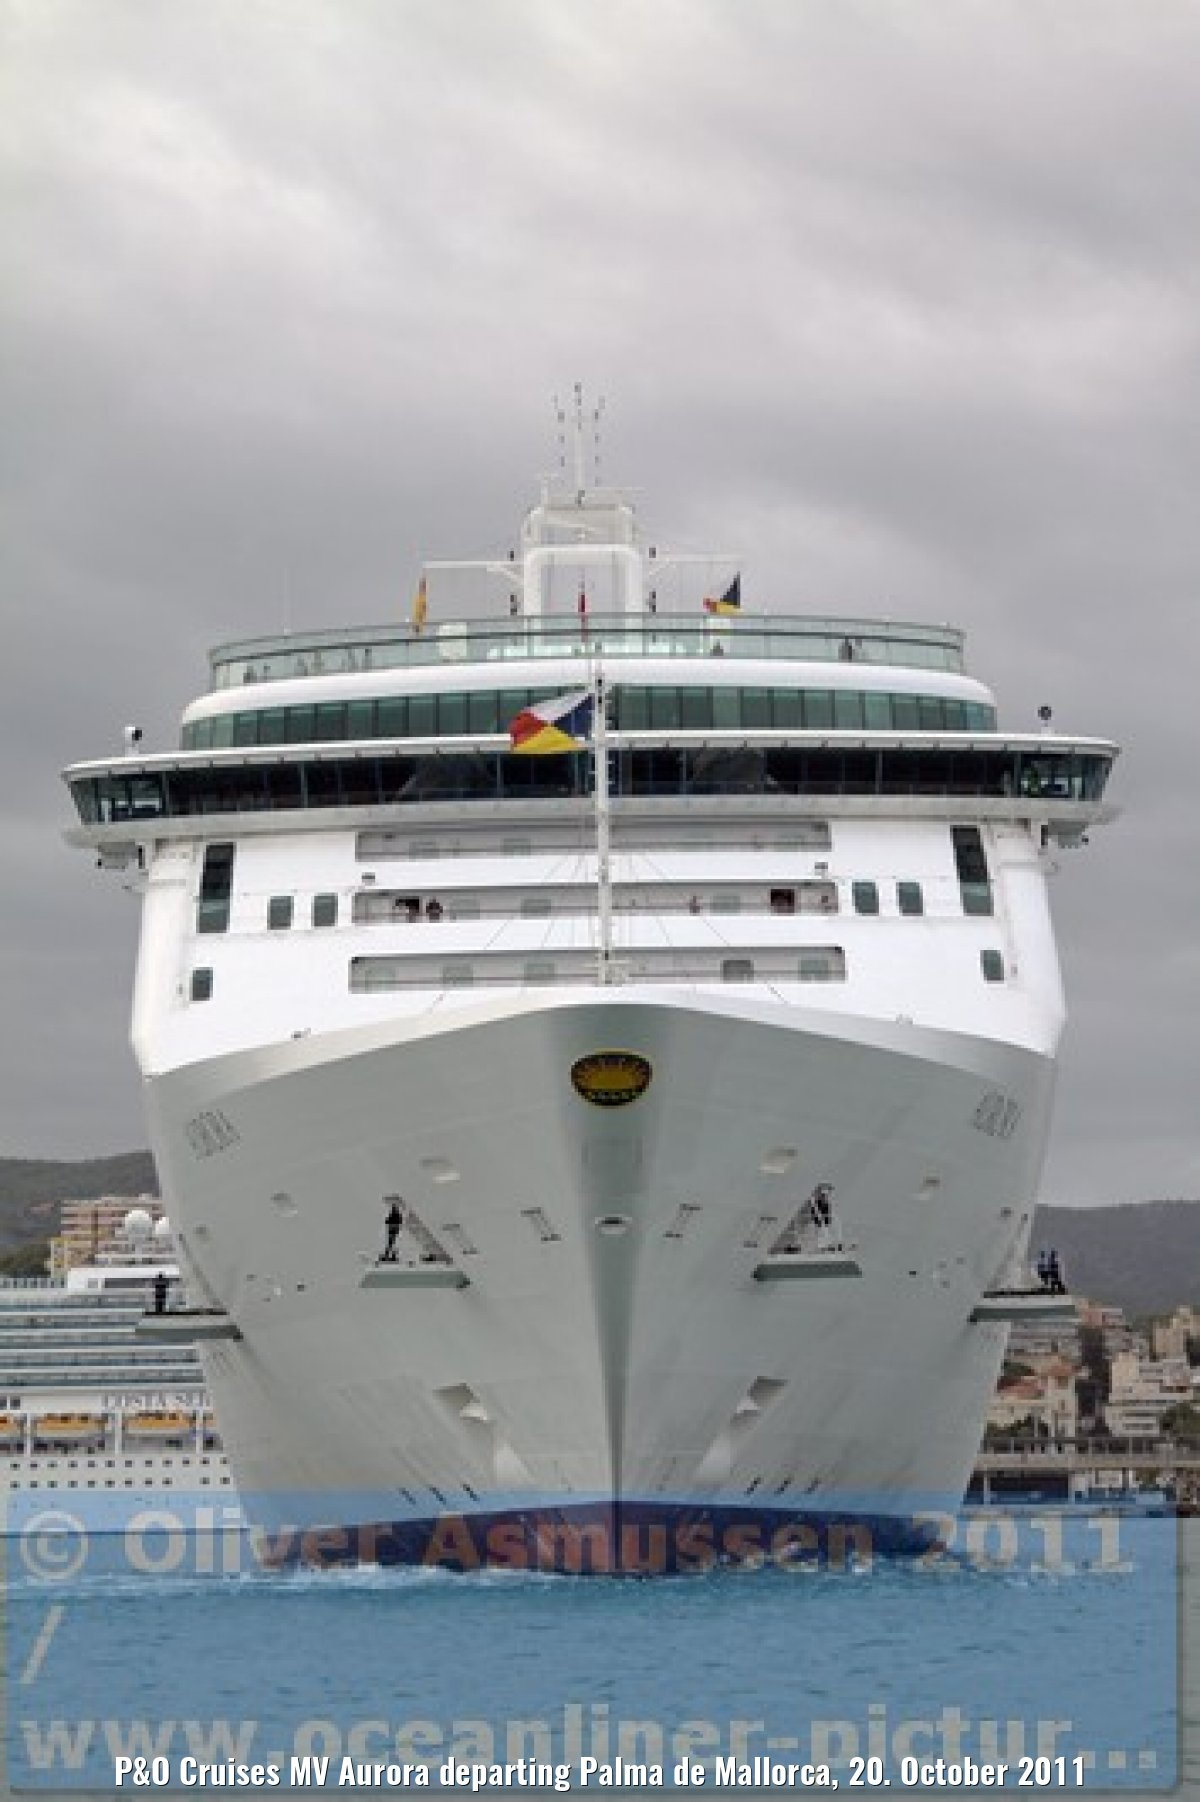 P&O Cruises MV Aurora departing Palma de Mallorca, 20. October 2011